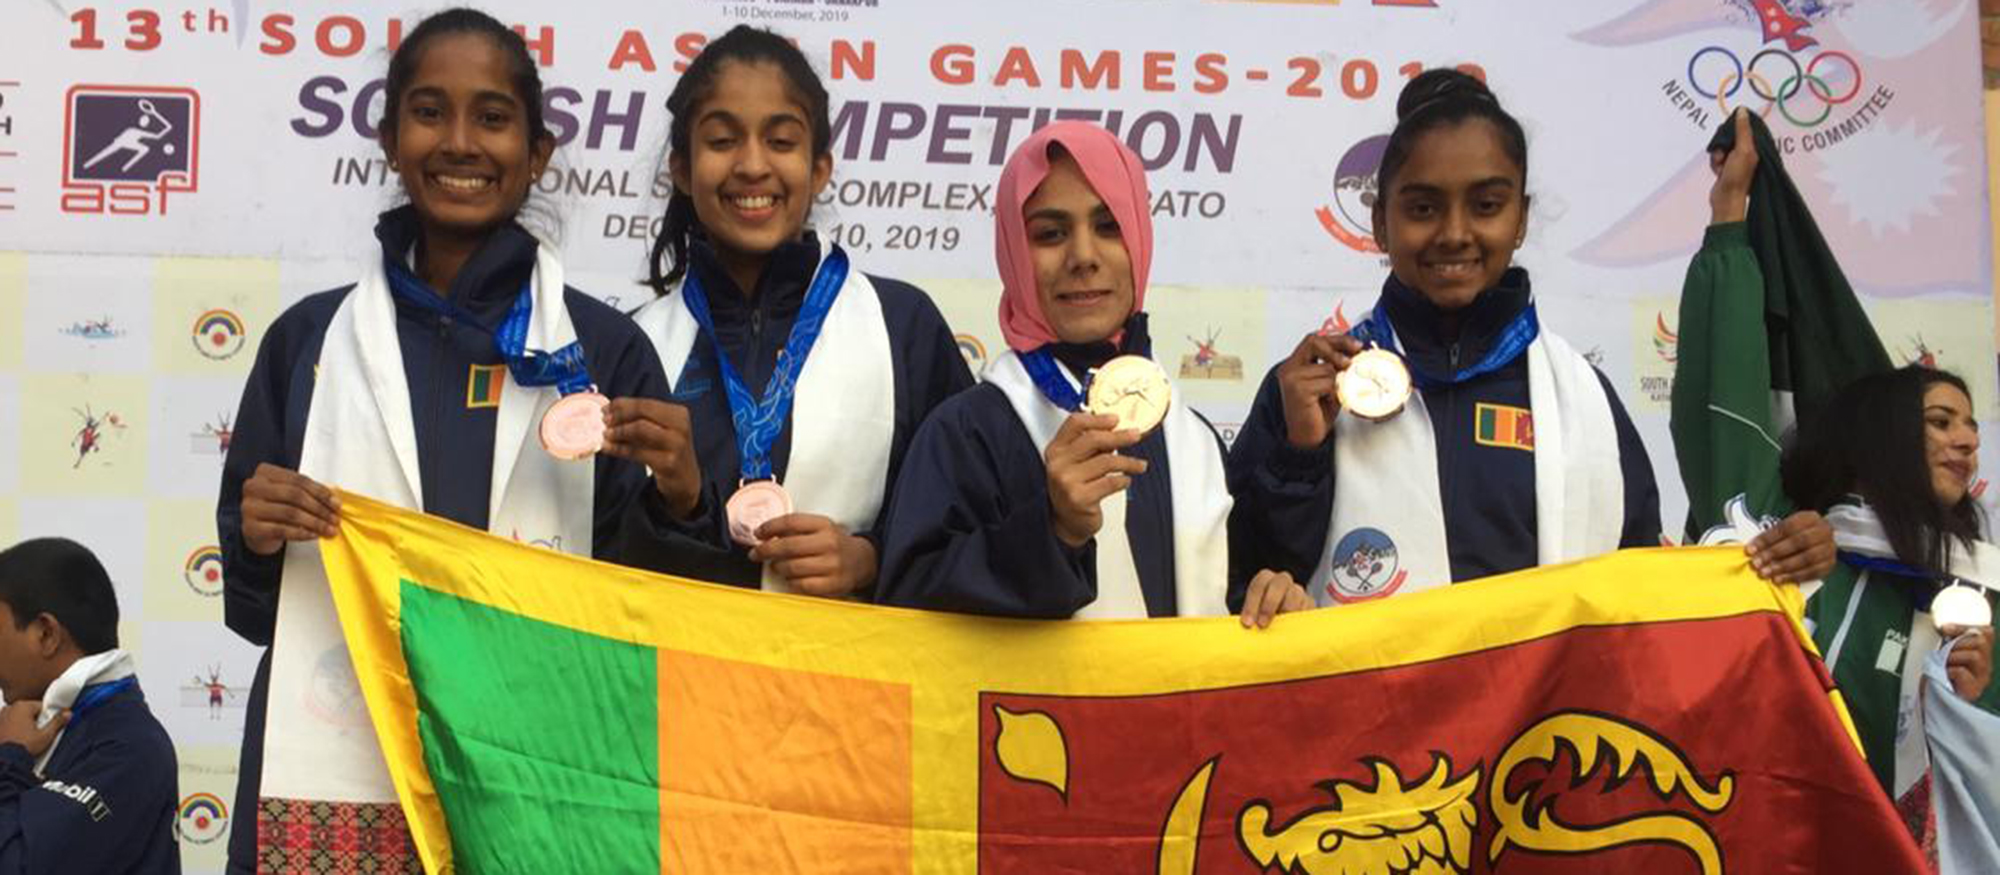 Squash's Methsarani Helps Sri Lanka to Bronze Medal at 13th South Asian Games in Nepal